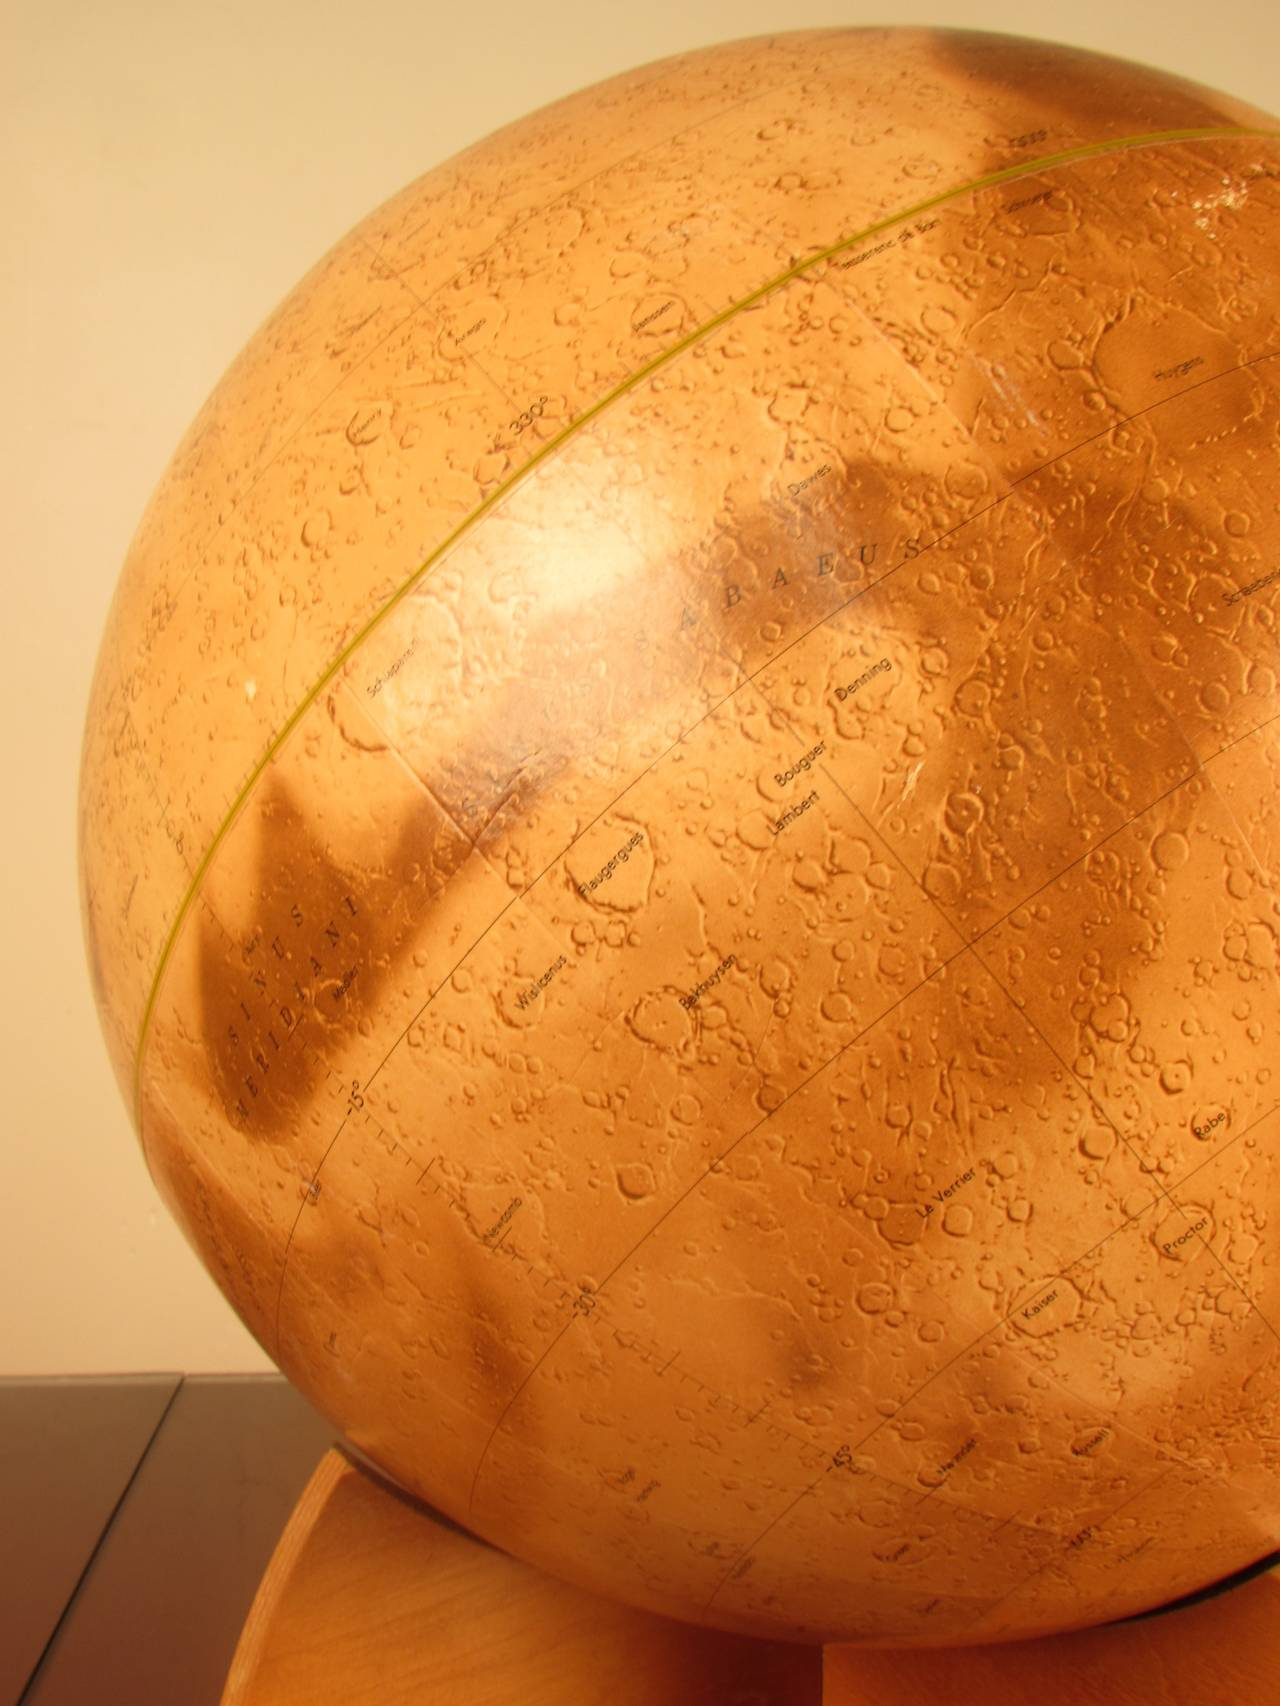 American Rare First Edition Mariner 9 Mars Globe Denoyer-Geppert, 1973 For Sale